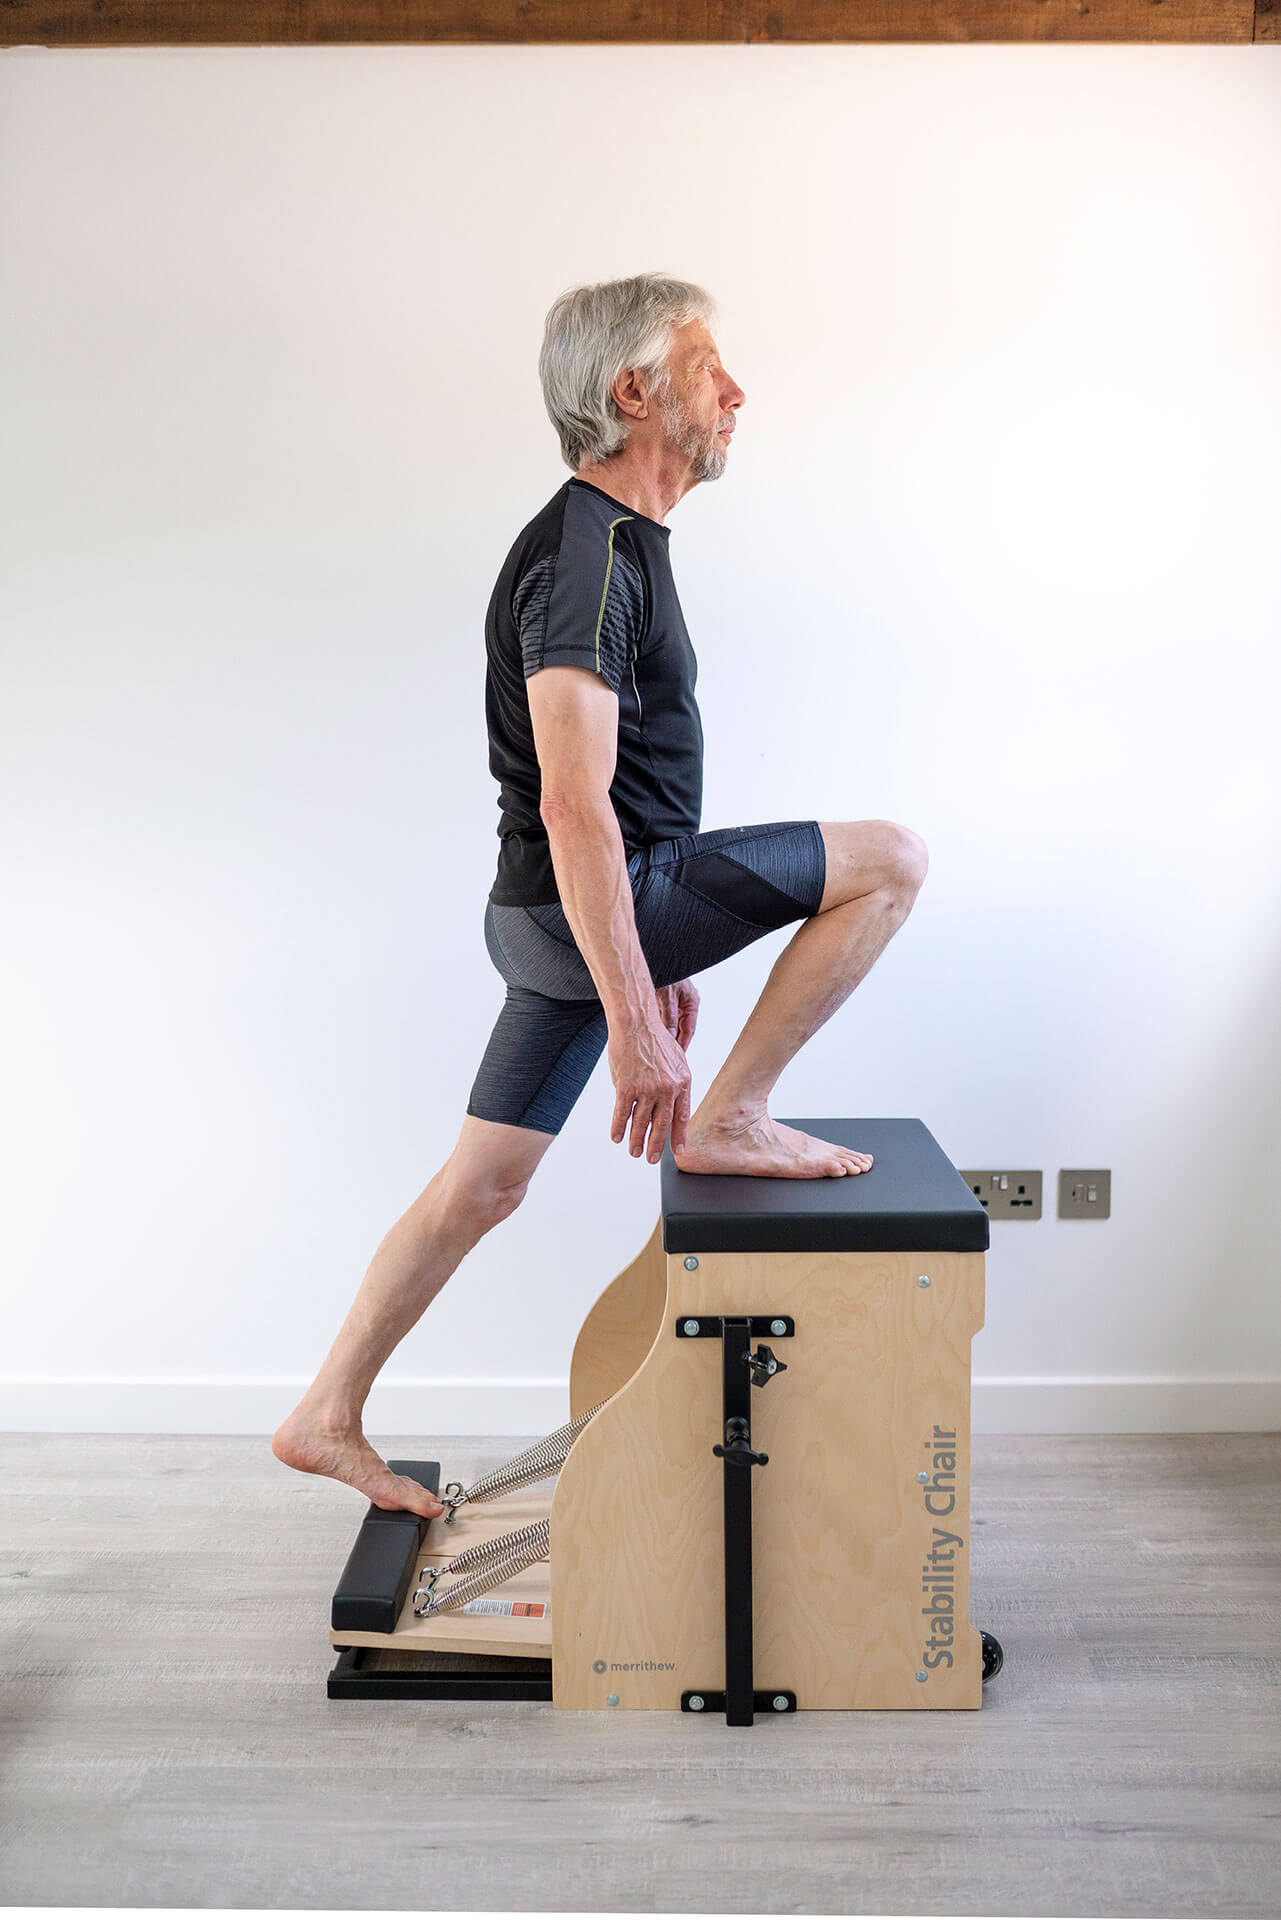 As well as the chair, we have a fully kitted out Pilates studio